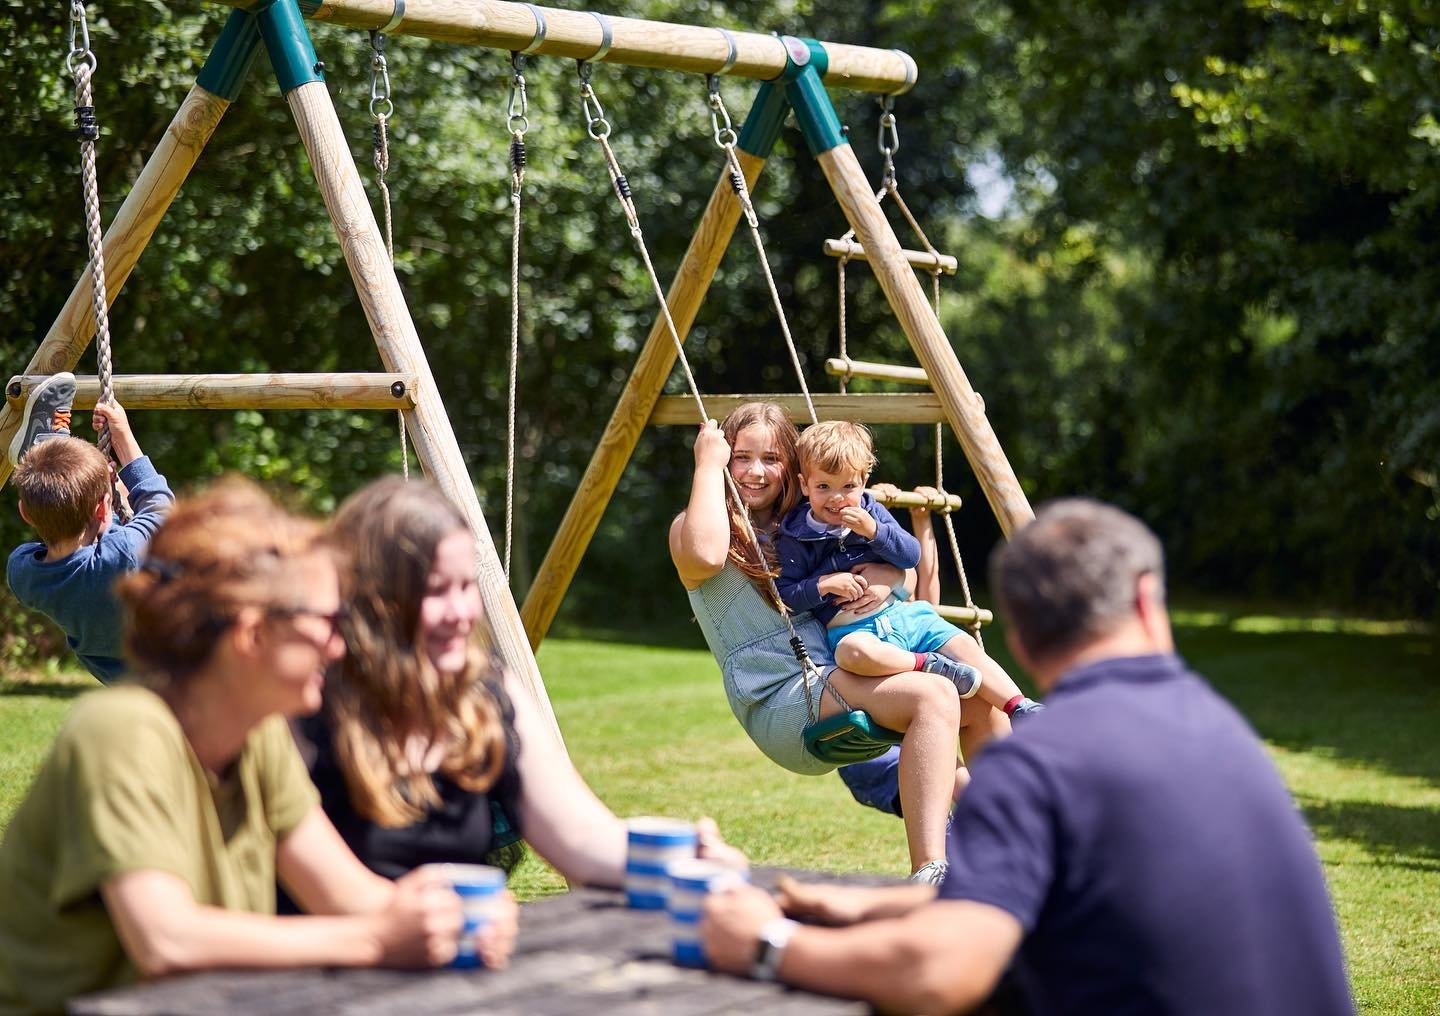 Family play area with adults drinking coffee and children playing on the swings